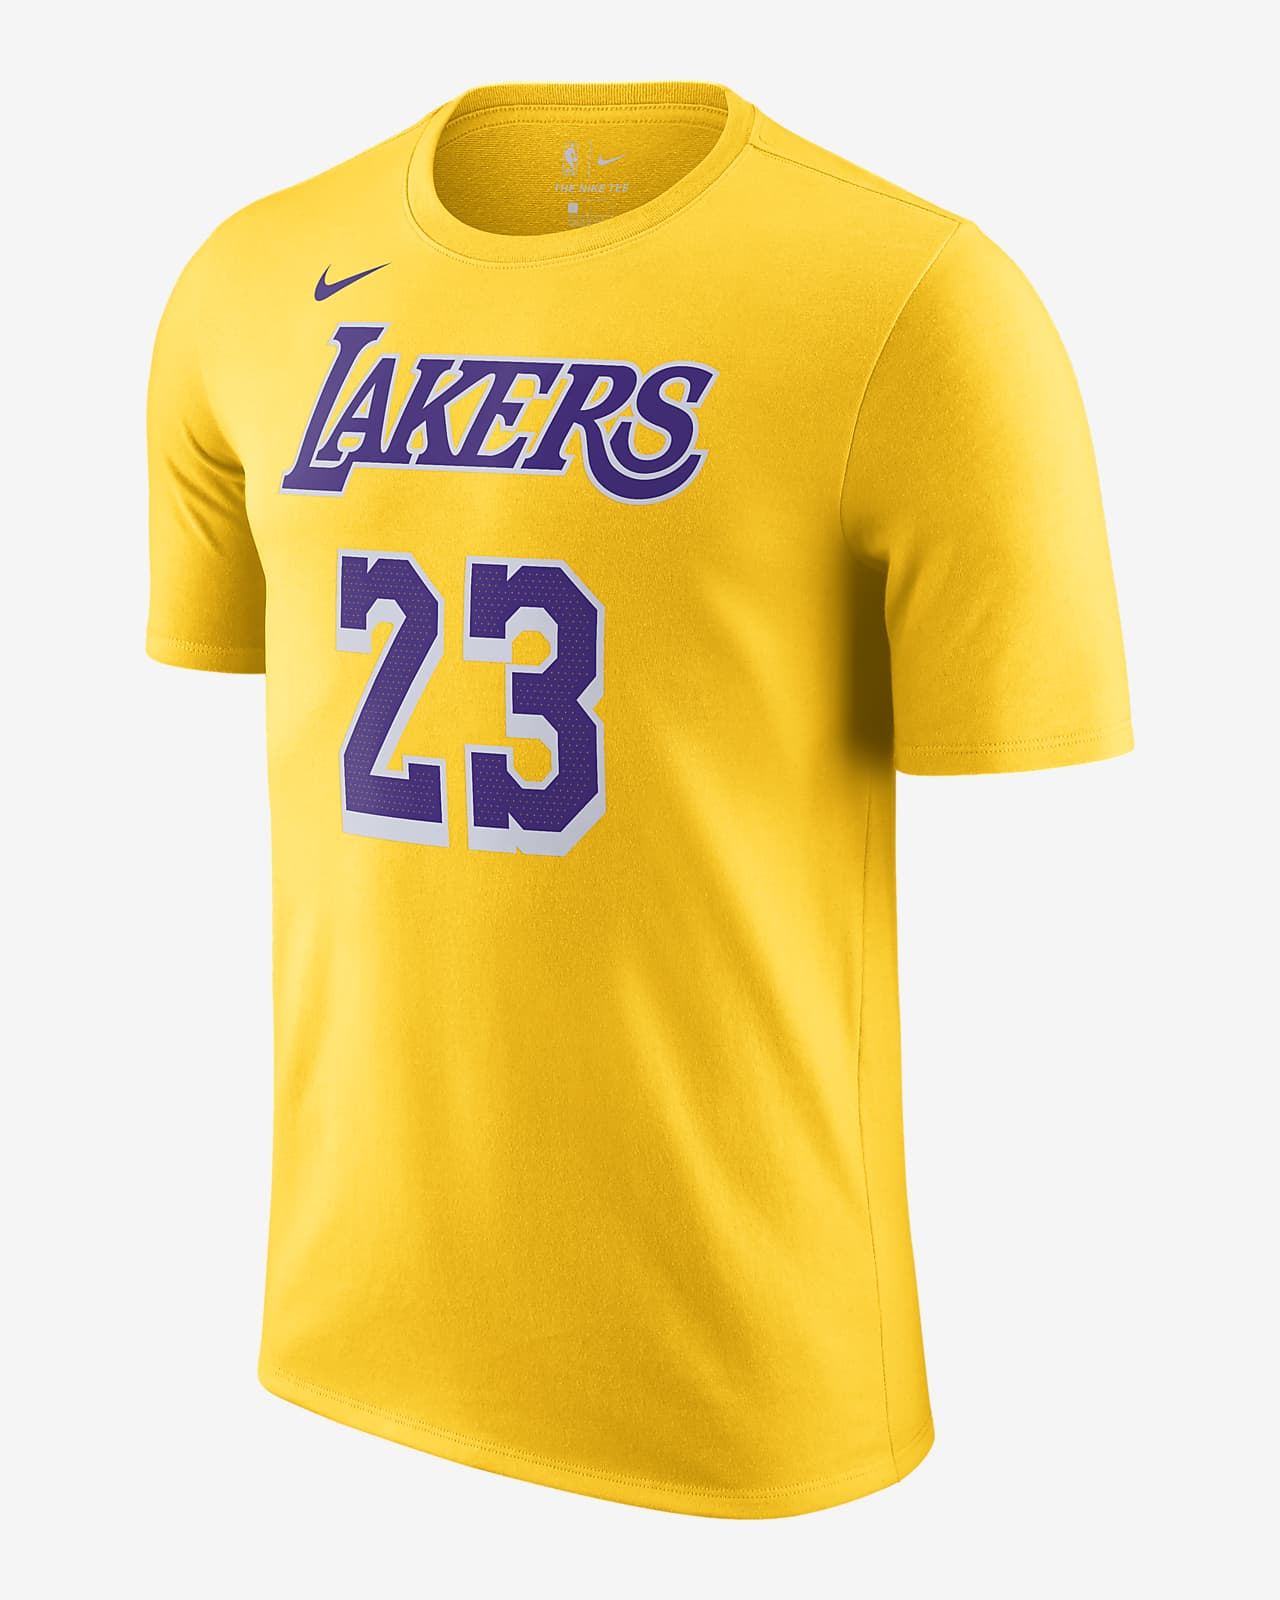 Lakers Men's Nike NBA T-Shirt